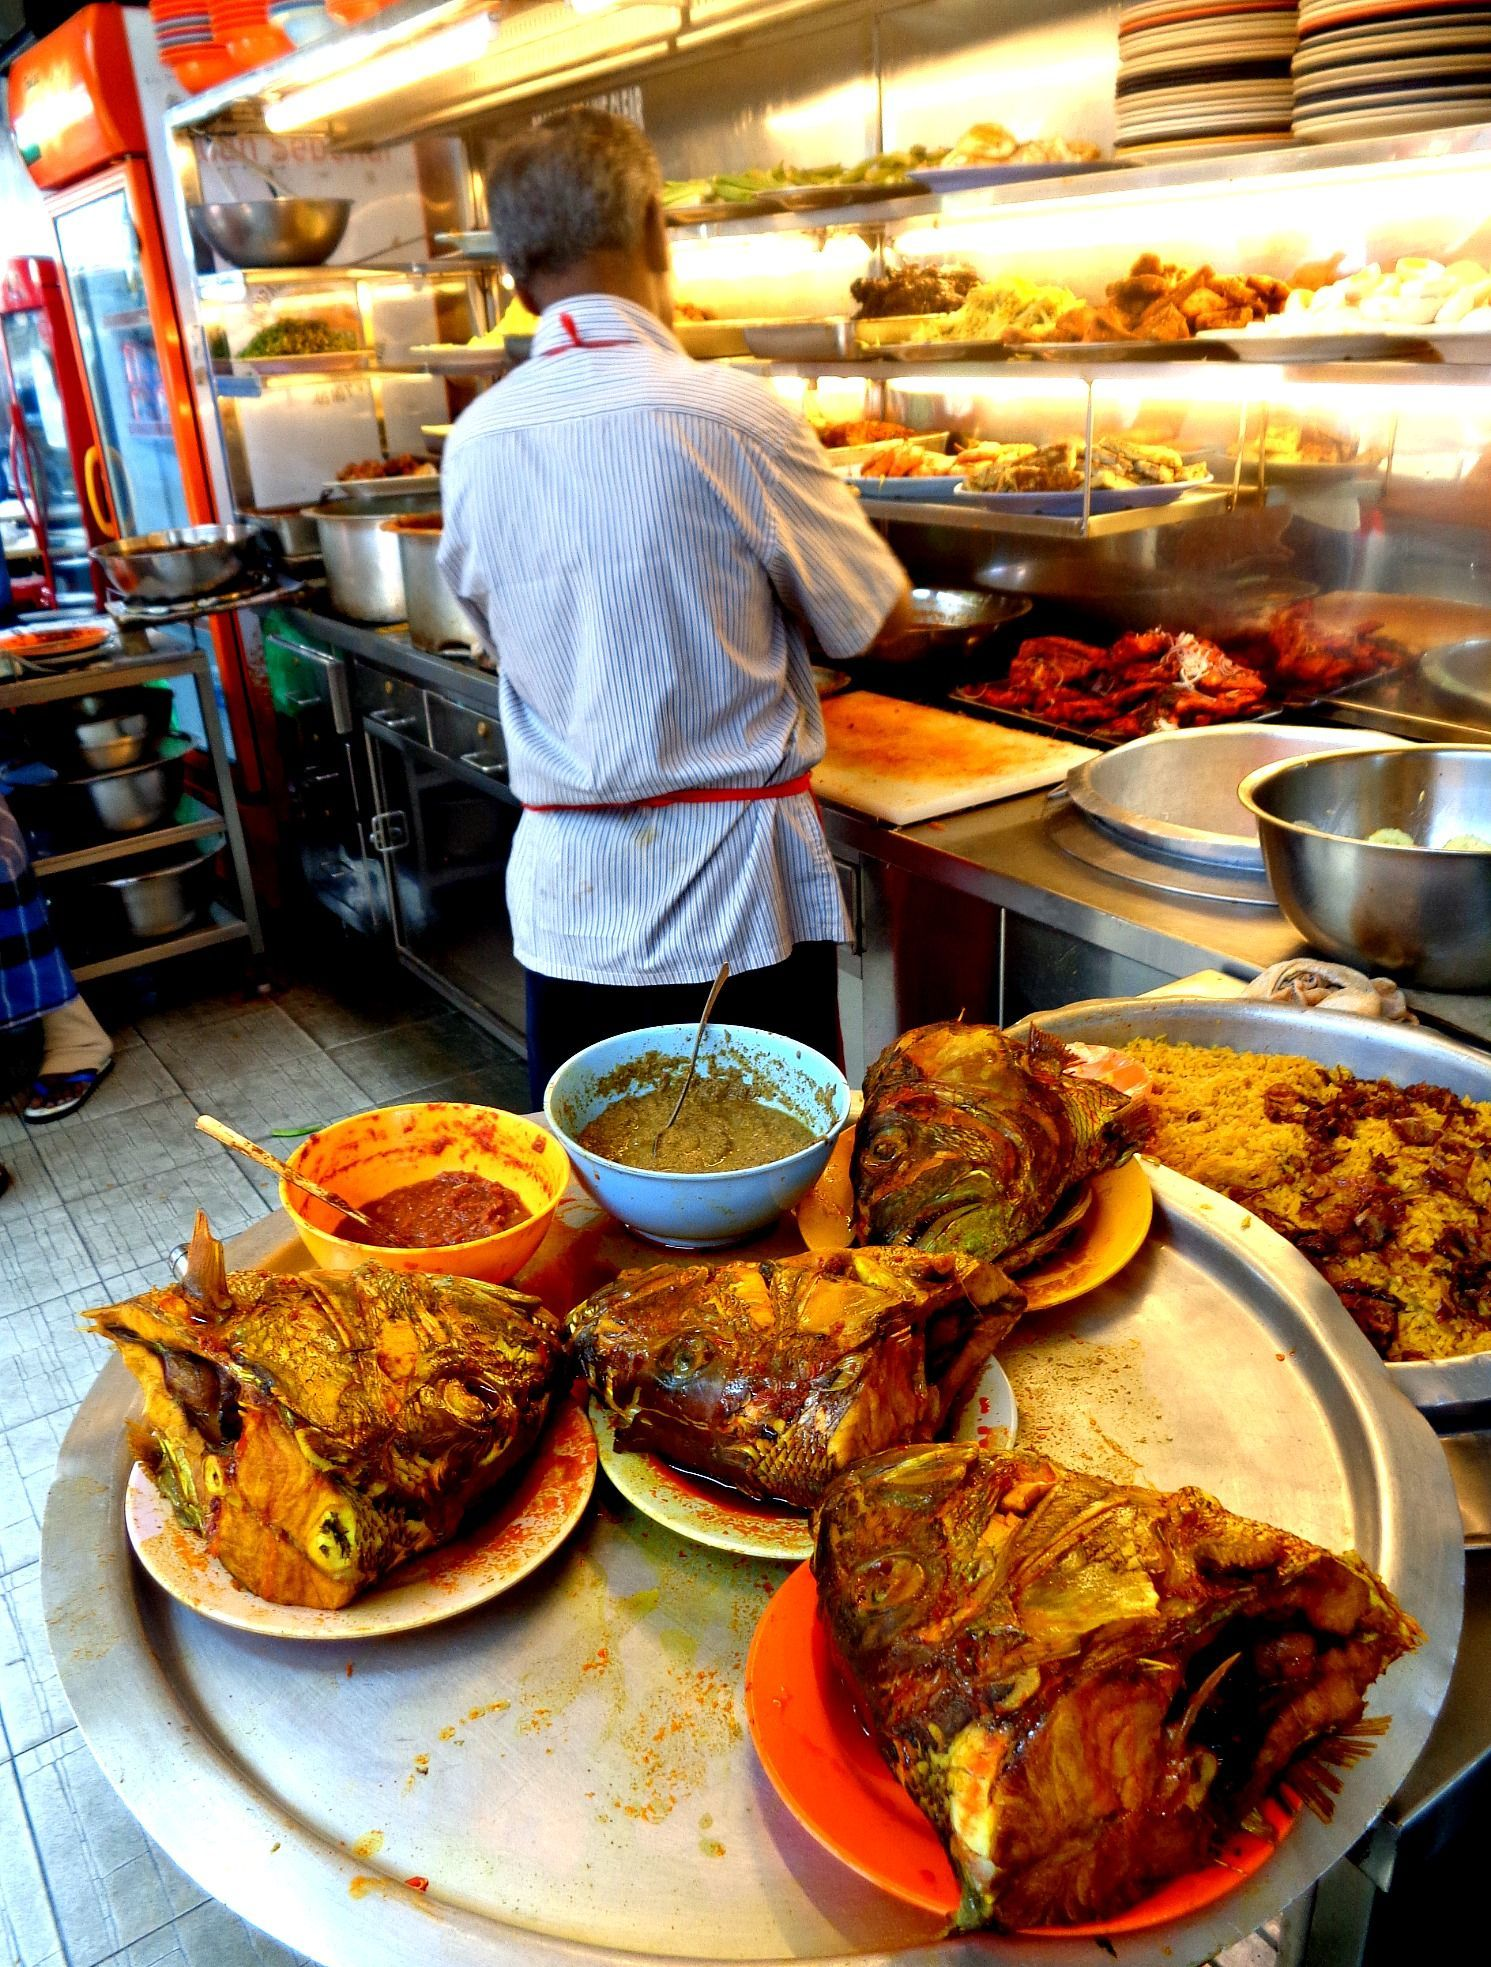 [Penang] Lunch at Line Clear Nasi Kandar - Asia Pacific - Hungry Onion